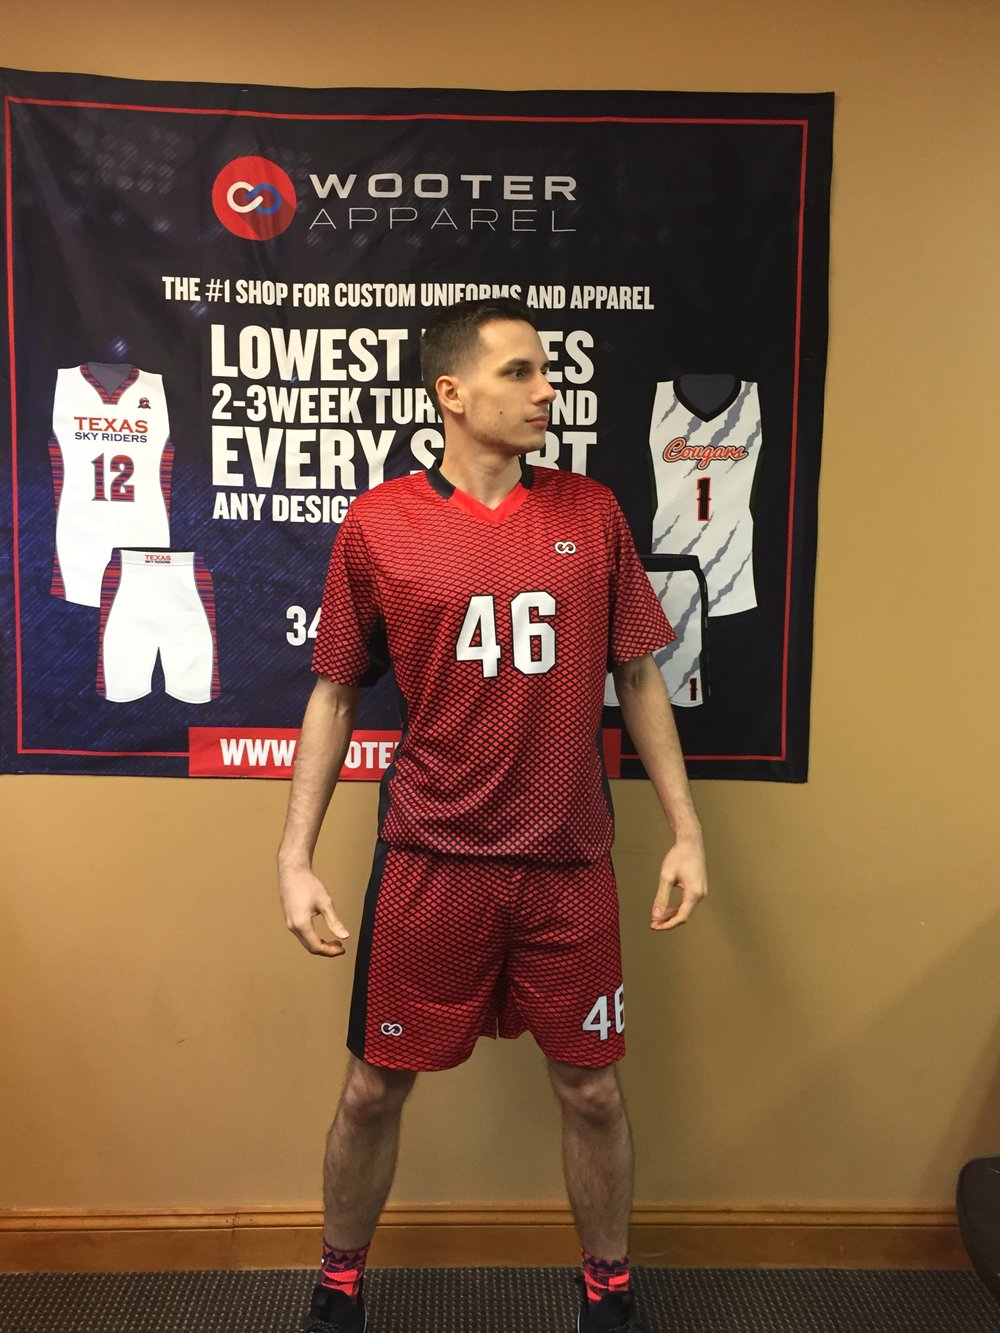 Maroon White Black soccer uniforms jerseys, shorts